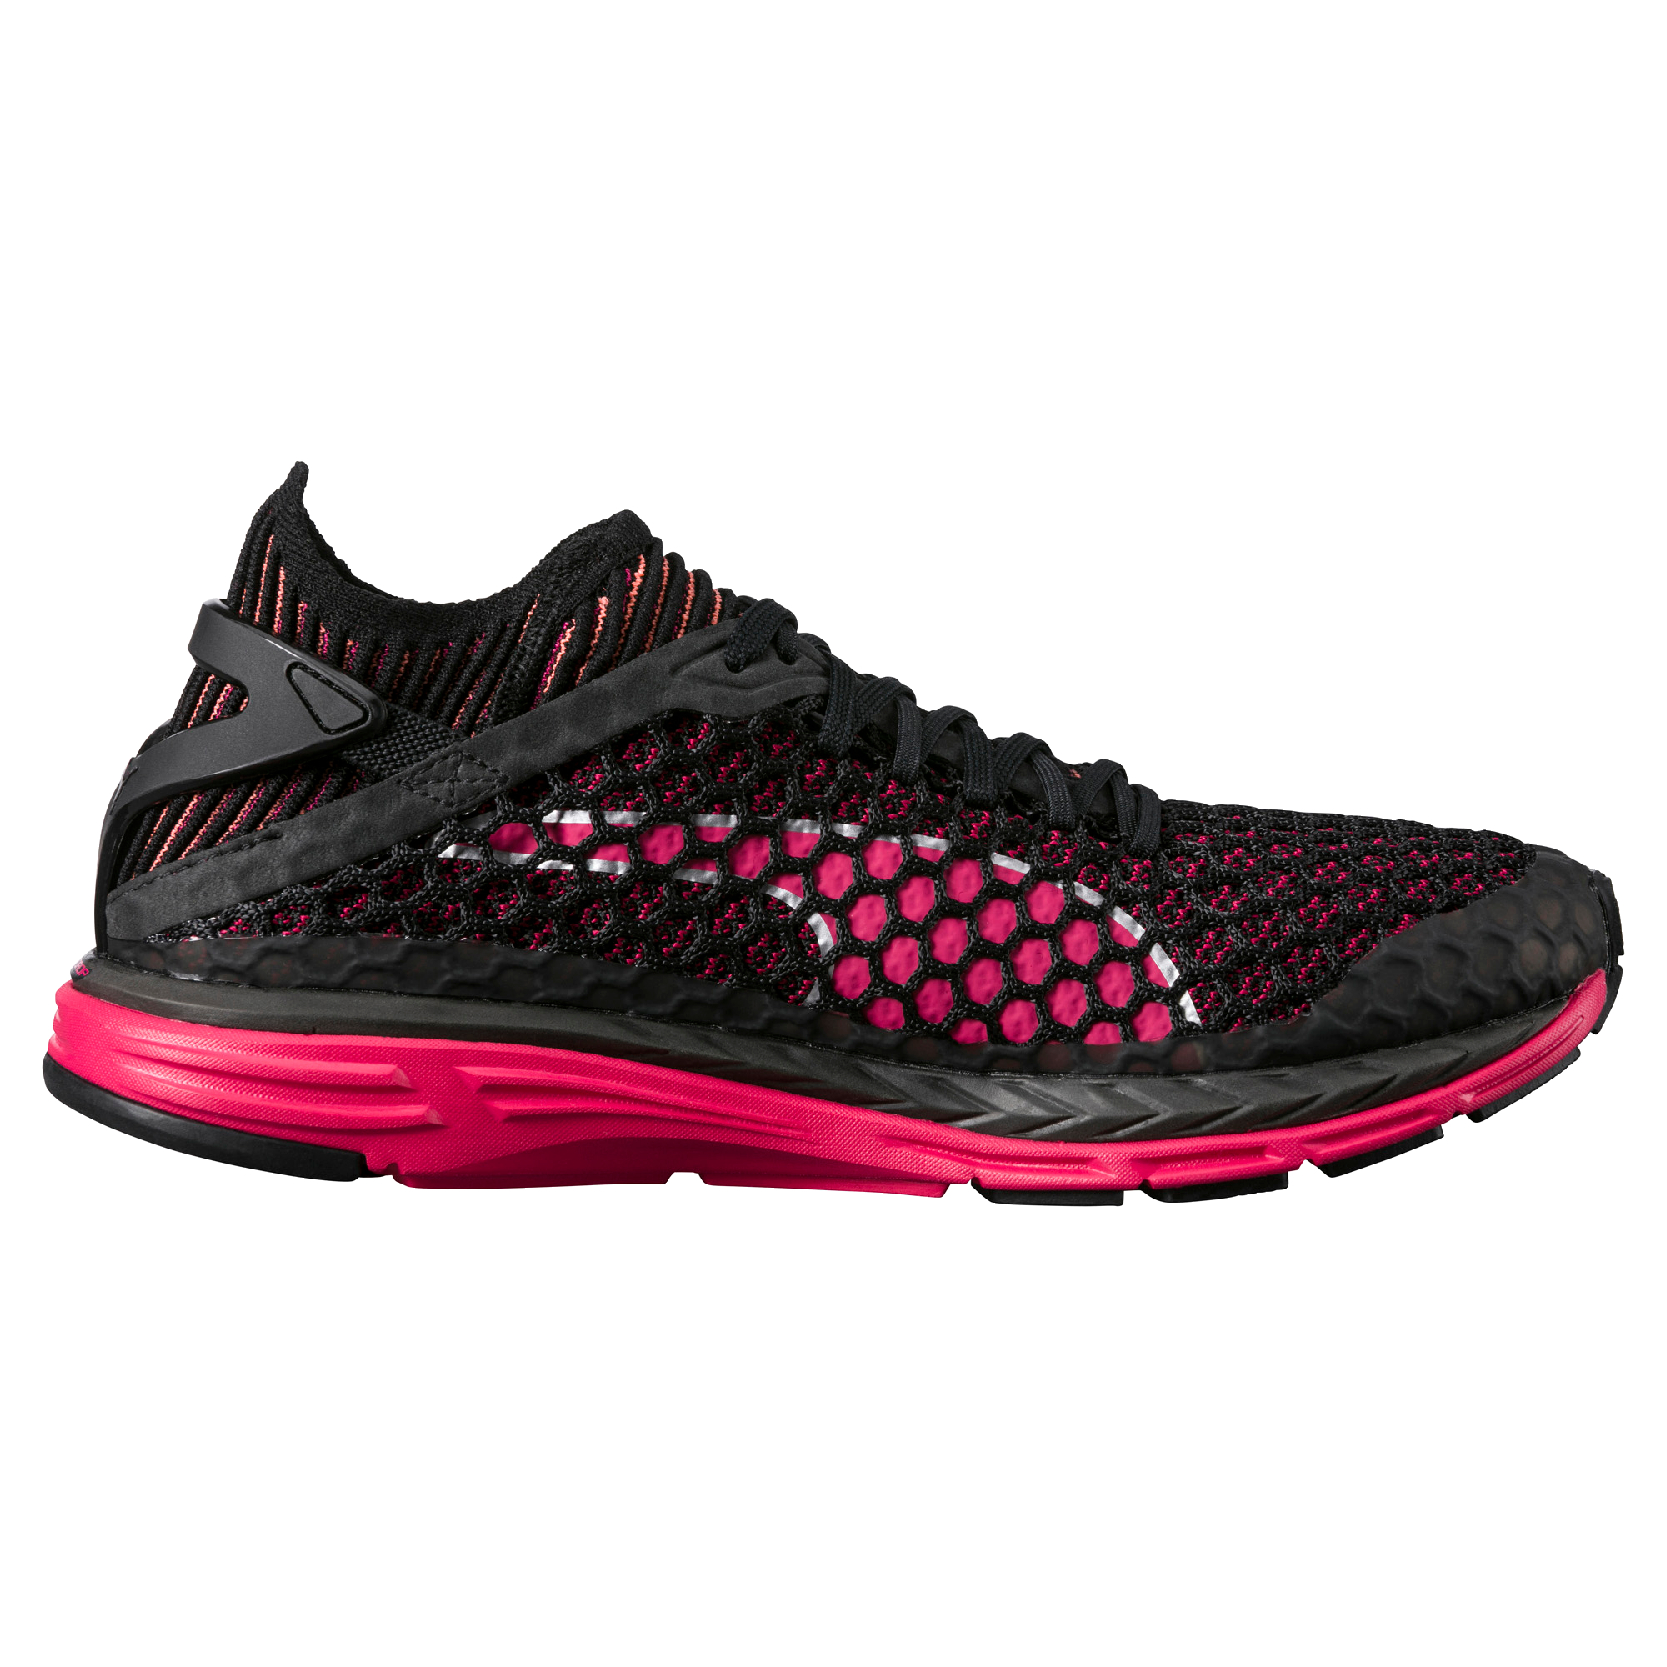 39ce603b7bb Puma Women's Speed Ignite Netfit Shoes